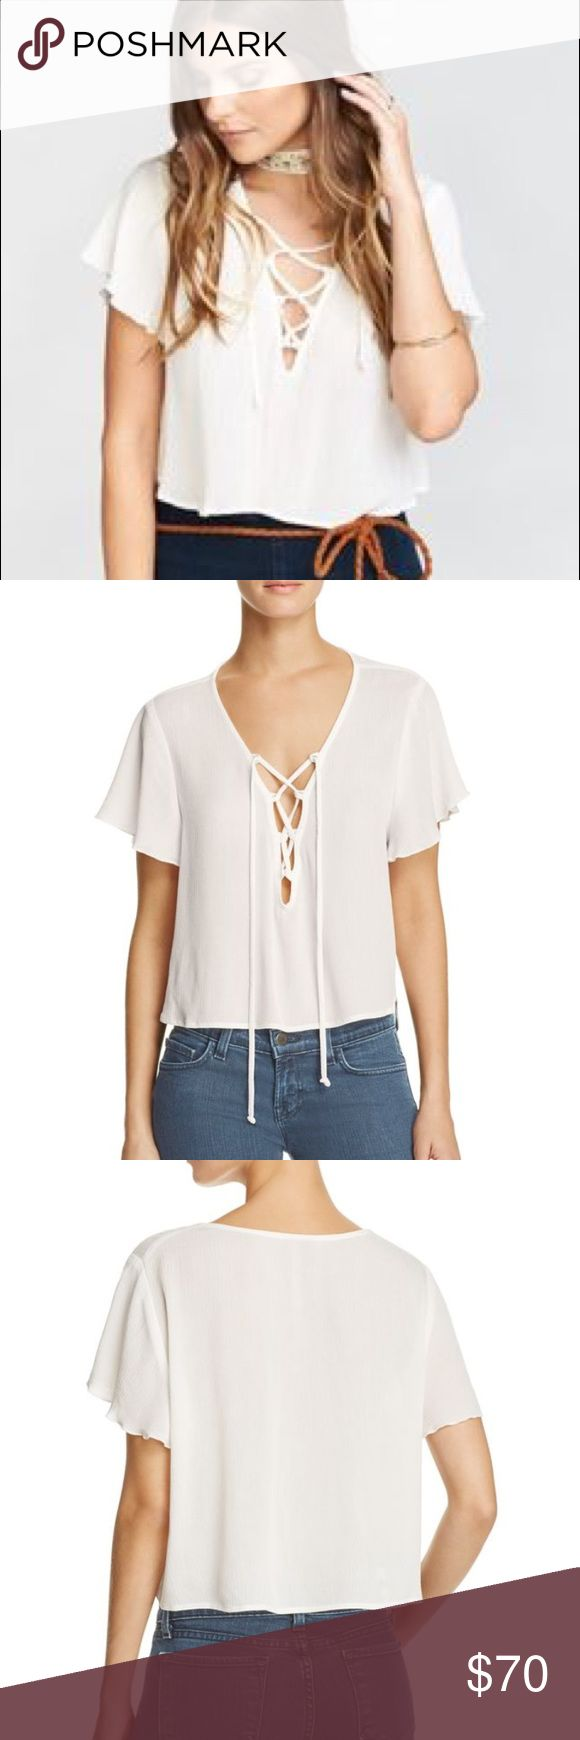 Show Me Your Mumu Oasis Crop Top Lace Up NWT M ☀️ New with tags Show Me Your Mumu white lace up Oasis Crop Top. Cute for summer with high rise shorts or jeans! ☀️ 🌊 Show Me Your MuMu Tops Crop Tops